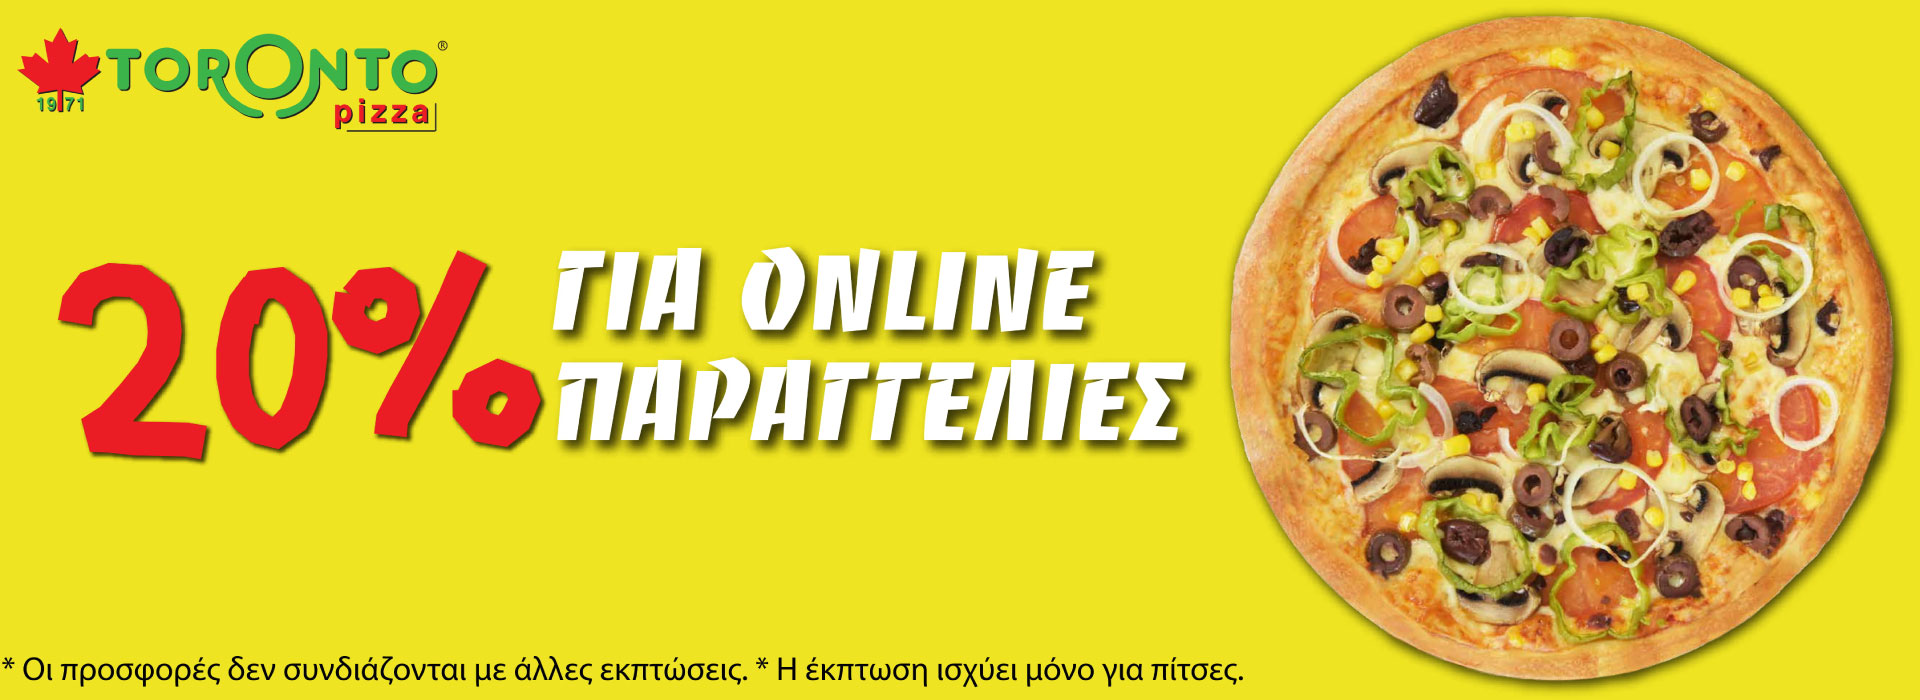 20% Online Discount All Pizzas